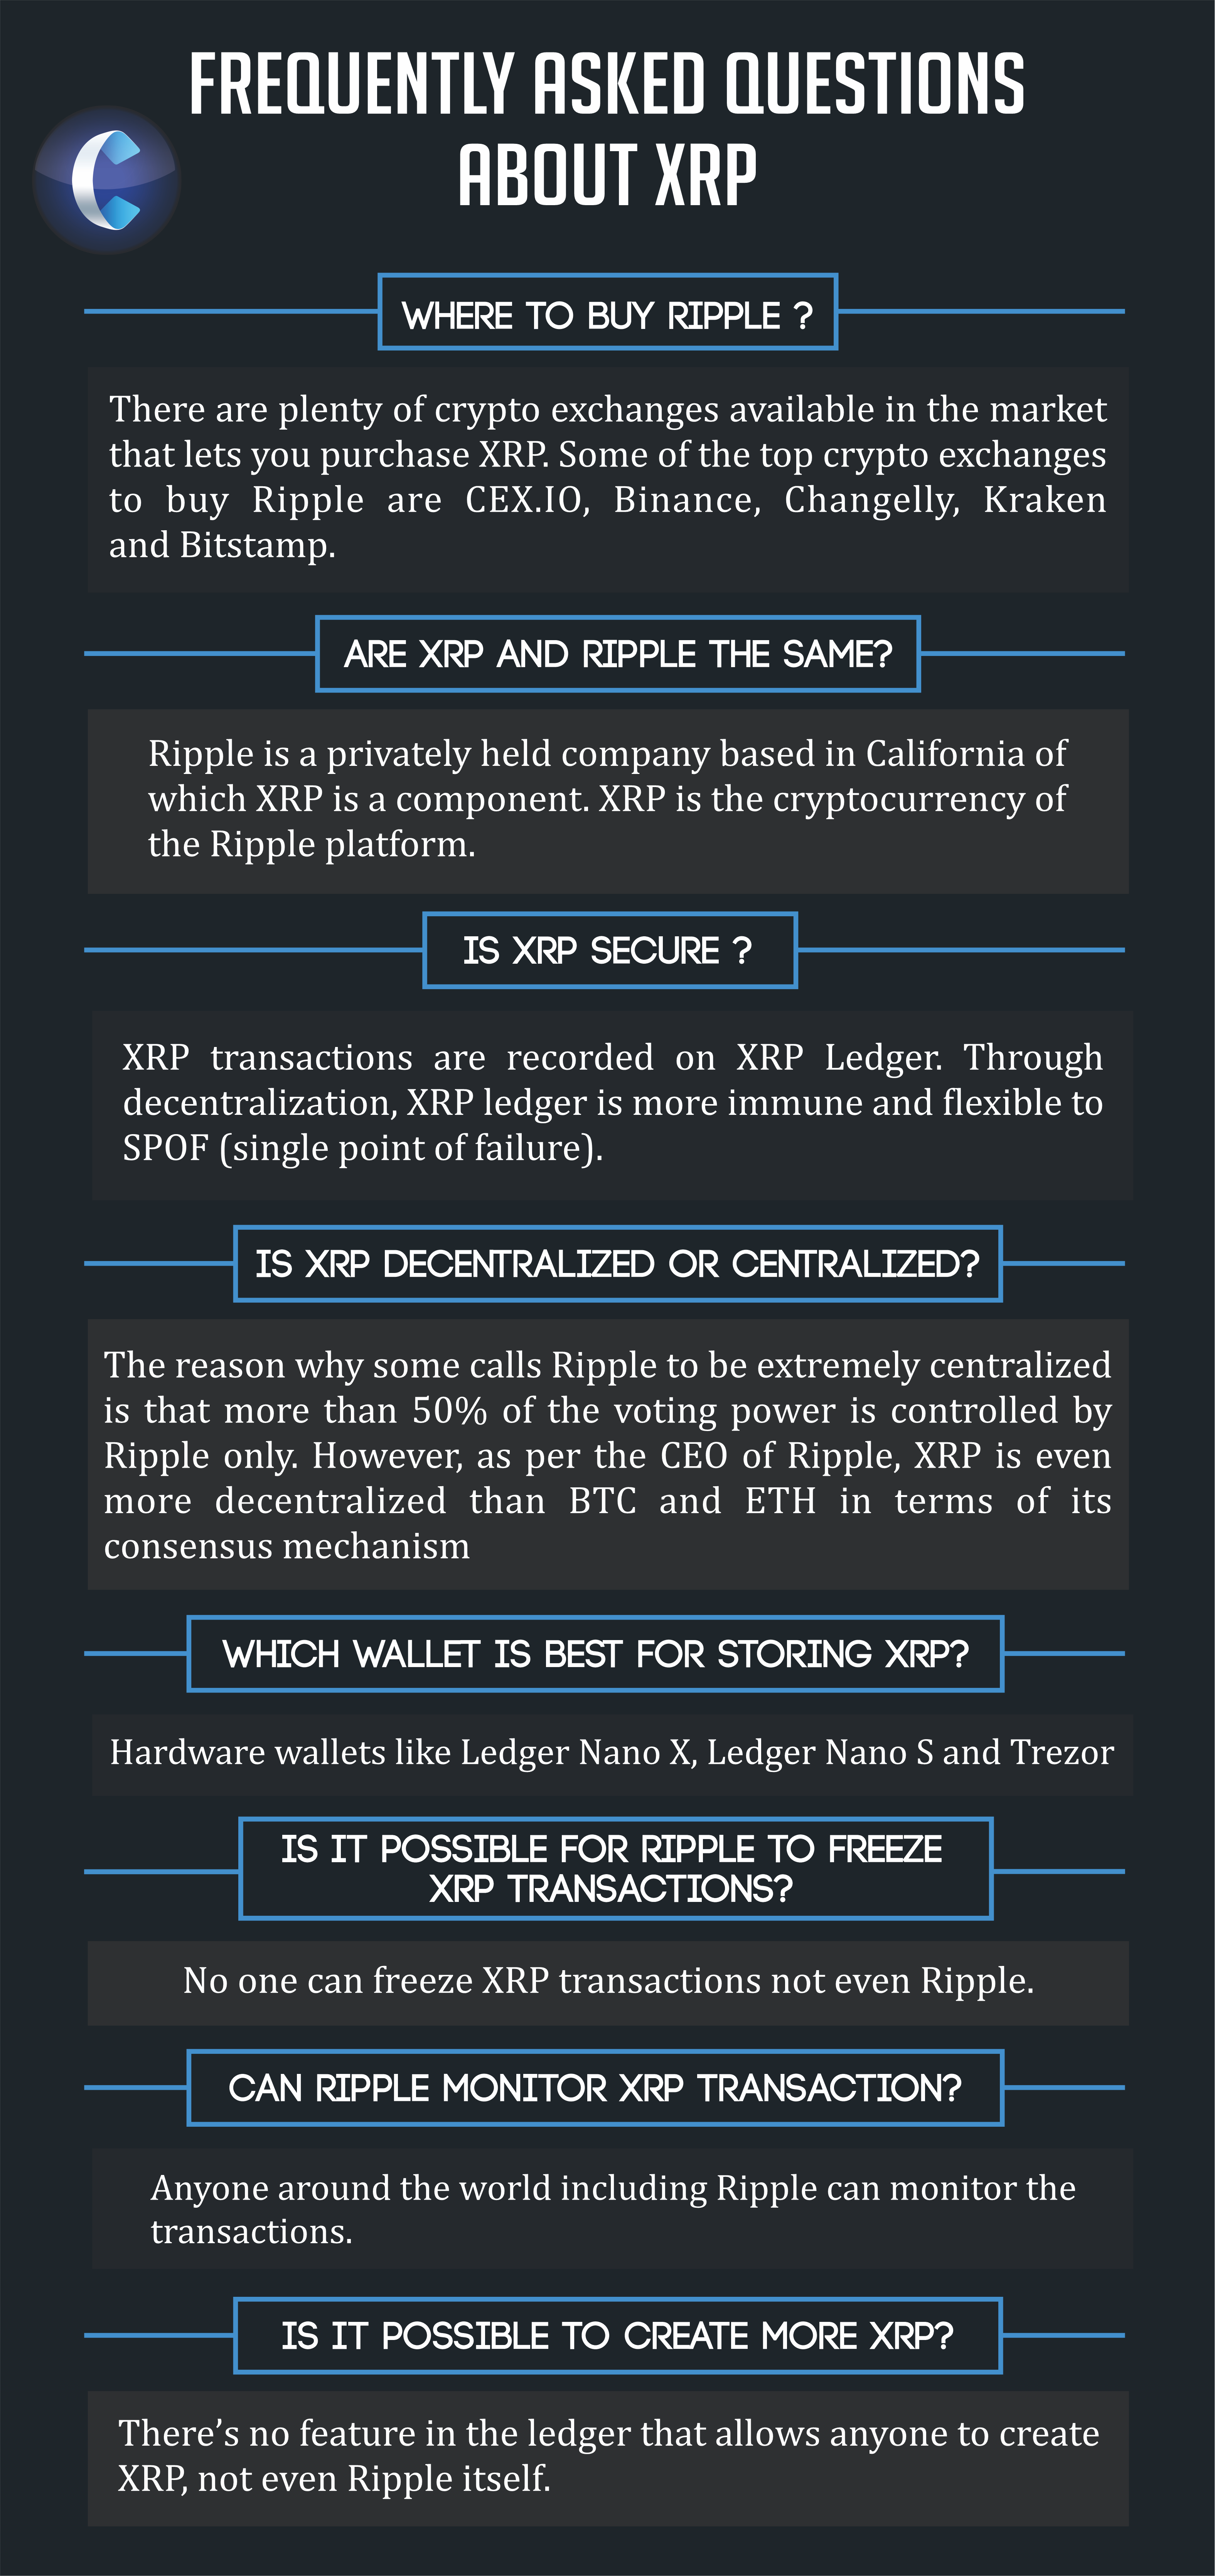 questions about xrp